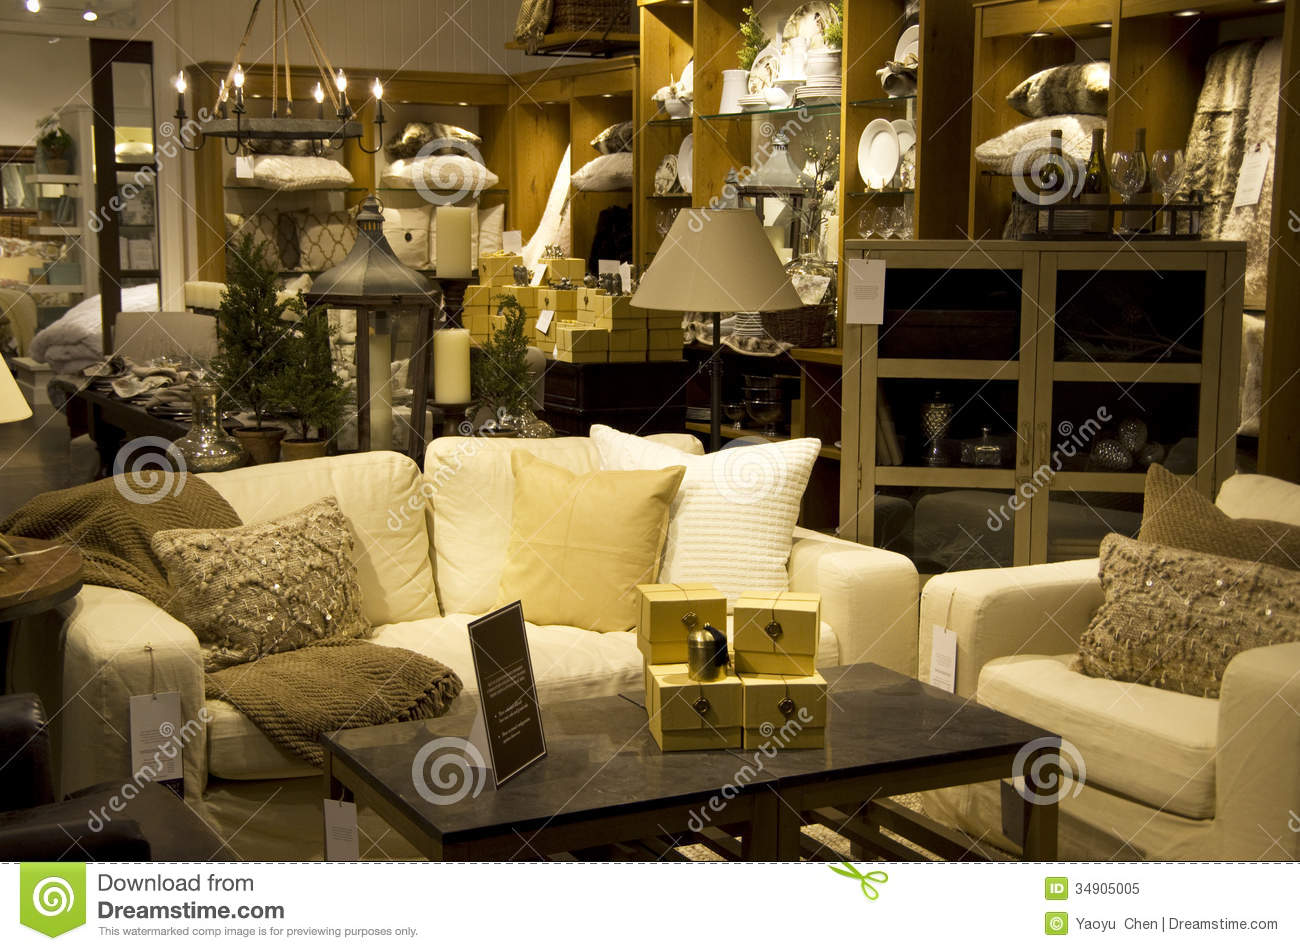 Luxury furniture home decor store royalty free stock photo image 34905005 - Home furnishing stores ...